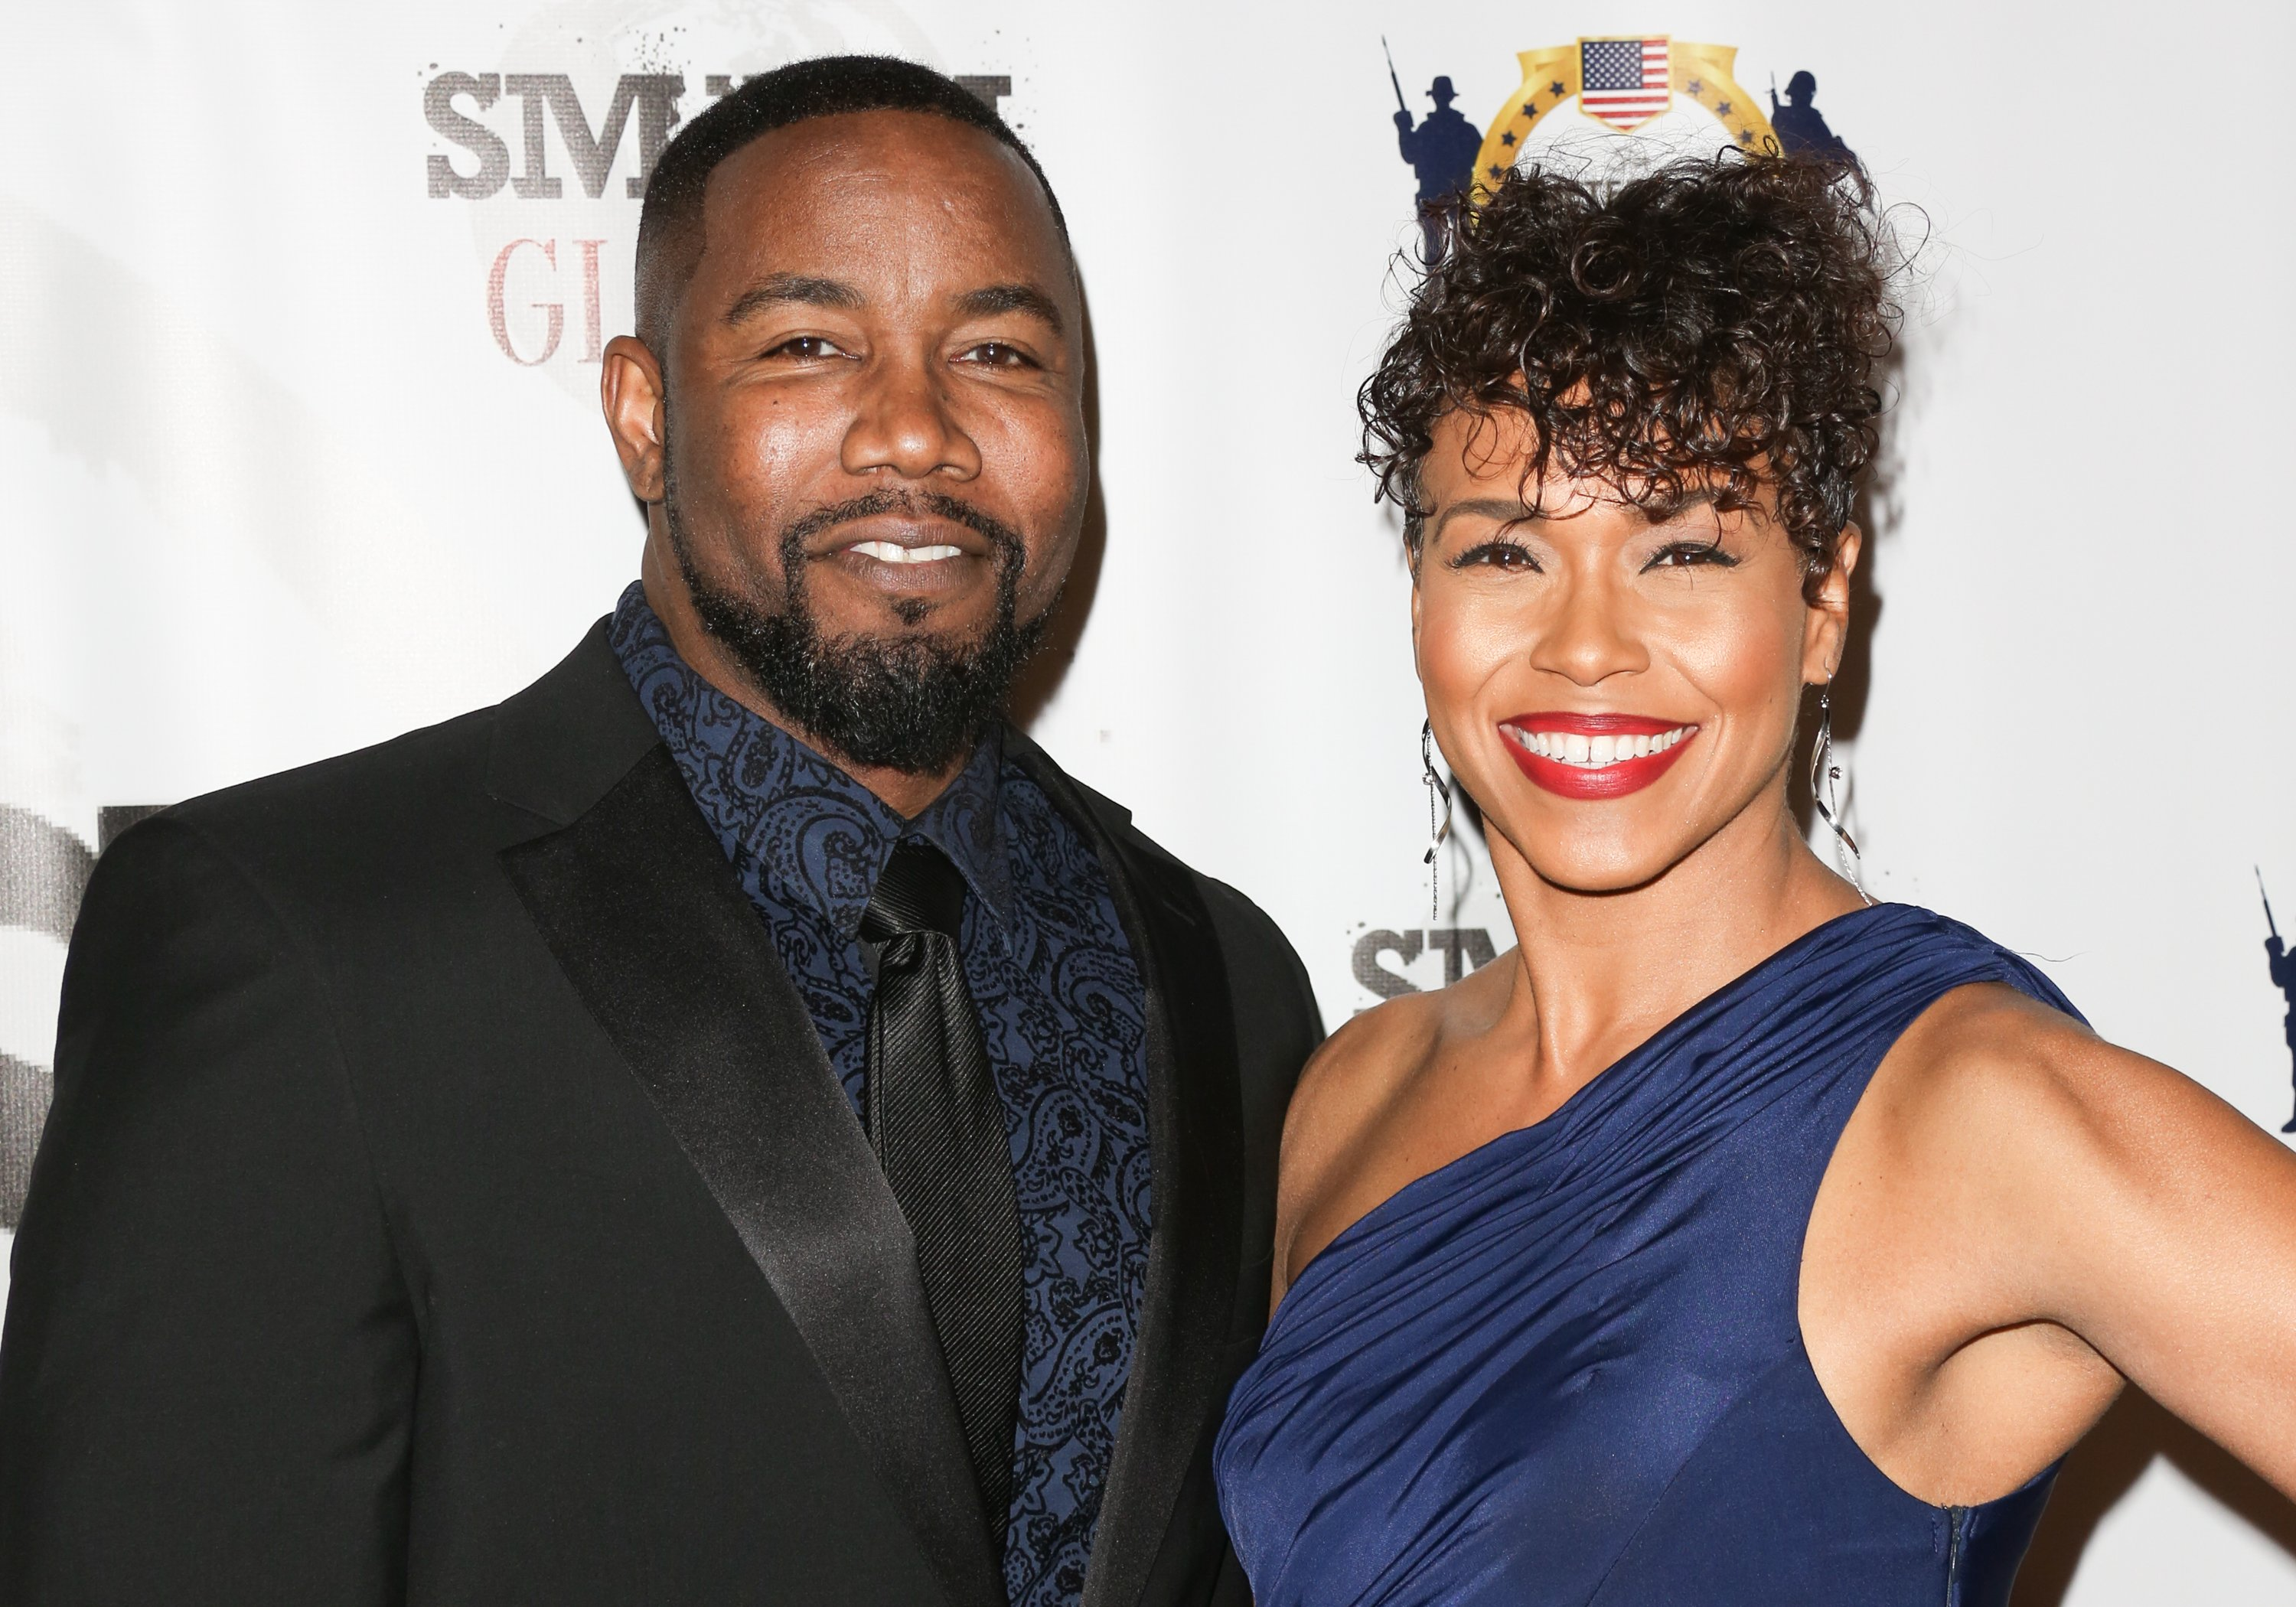 Michael Jai White and Gillian Iliana Waters on February 23, 2017 in Los Angeles, California | Photo: Getty Images/Global Images Ukraine